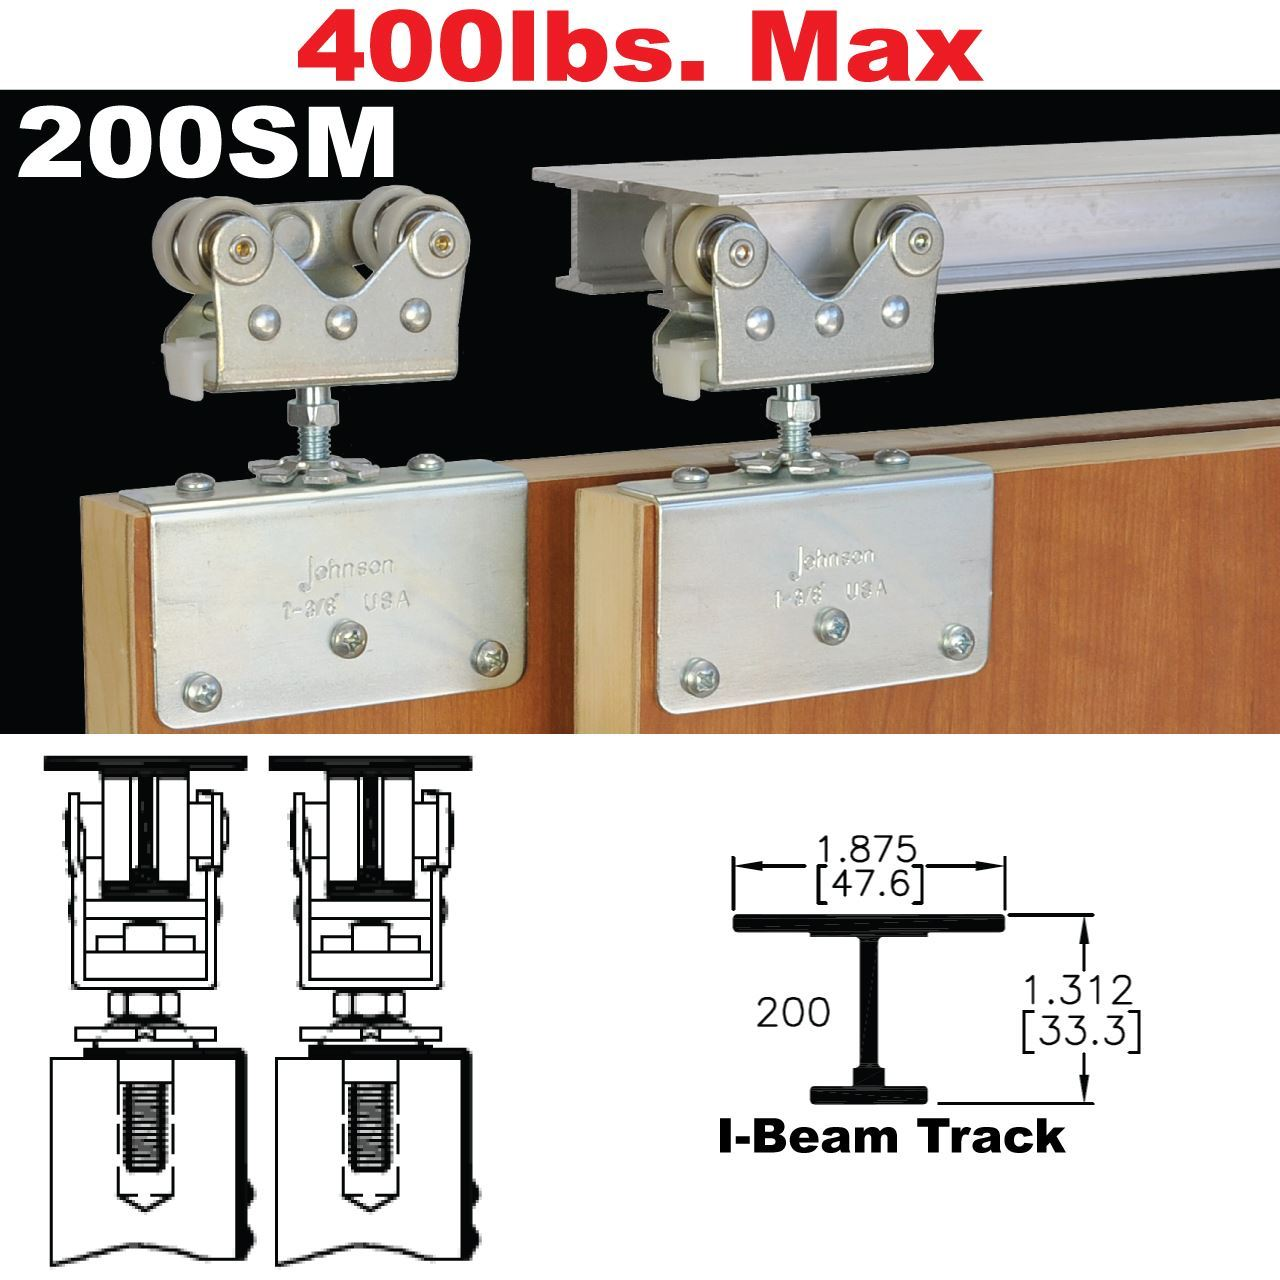 sliding door hardware. Picture Of 200SM Side Mount Sliding Bypass Door Hardware